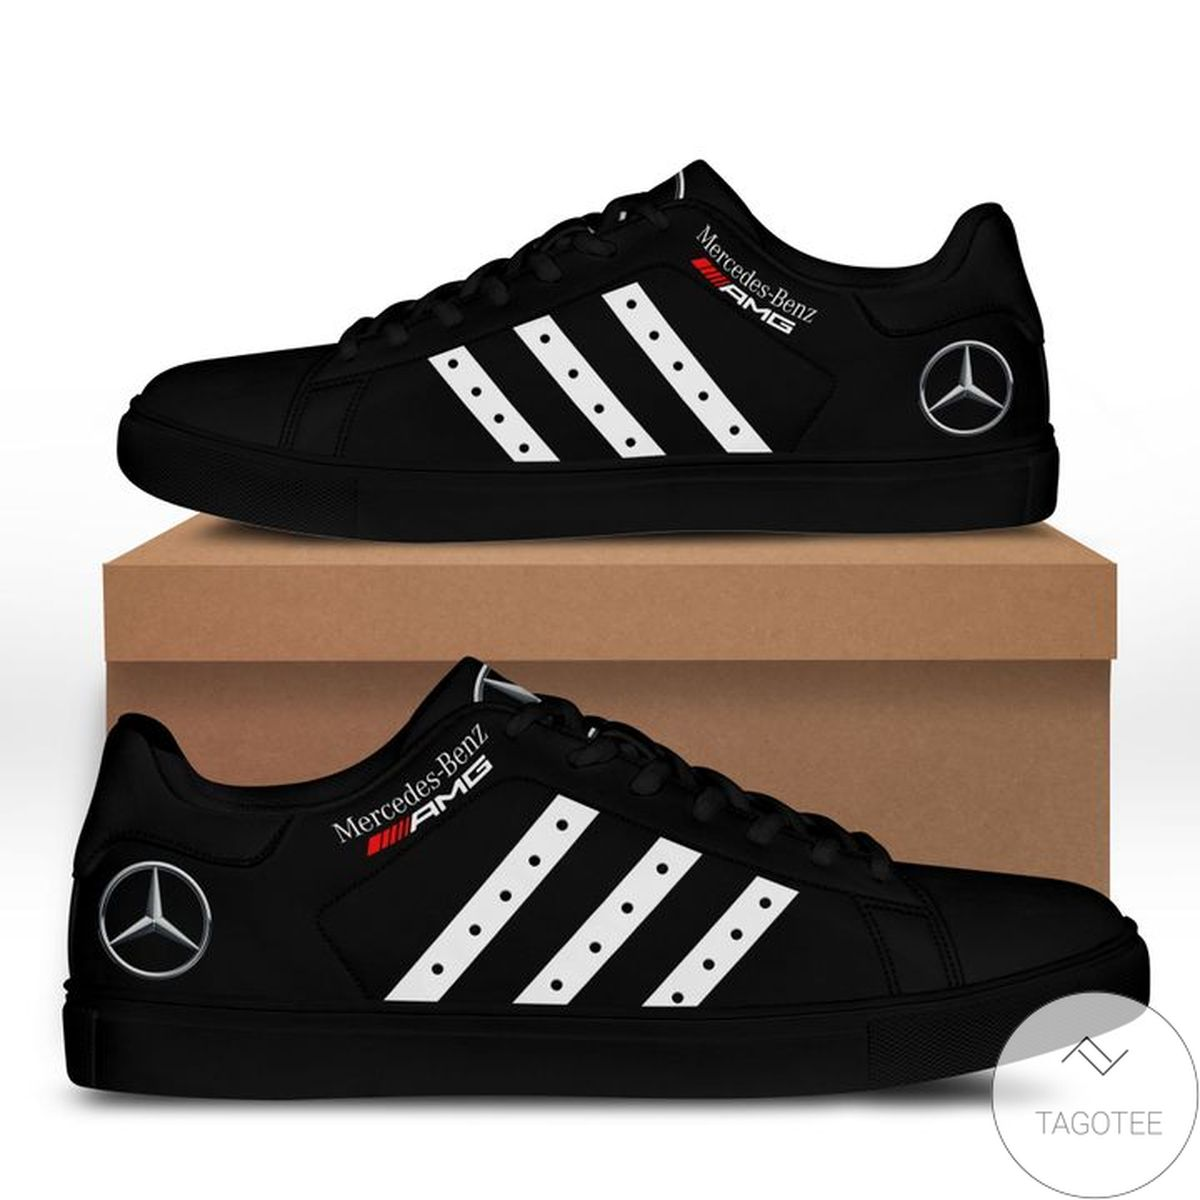 Best Gift Mercedes Amg Black Stan Smith Shoes